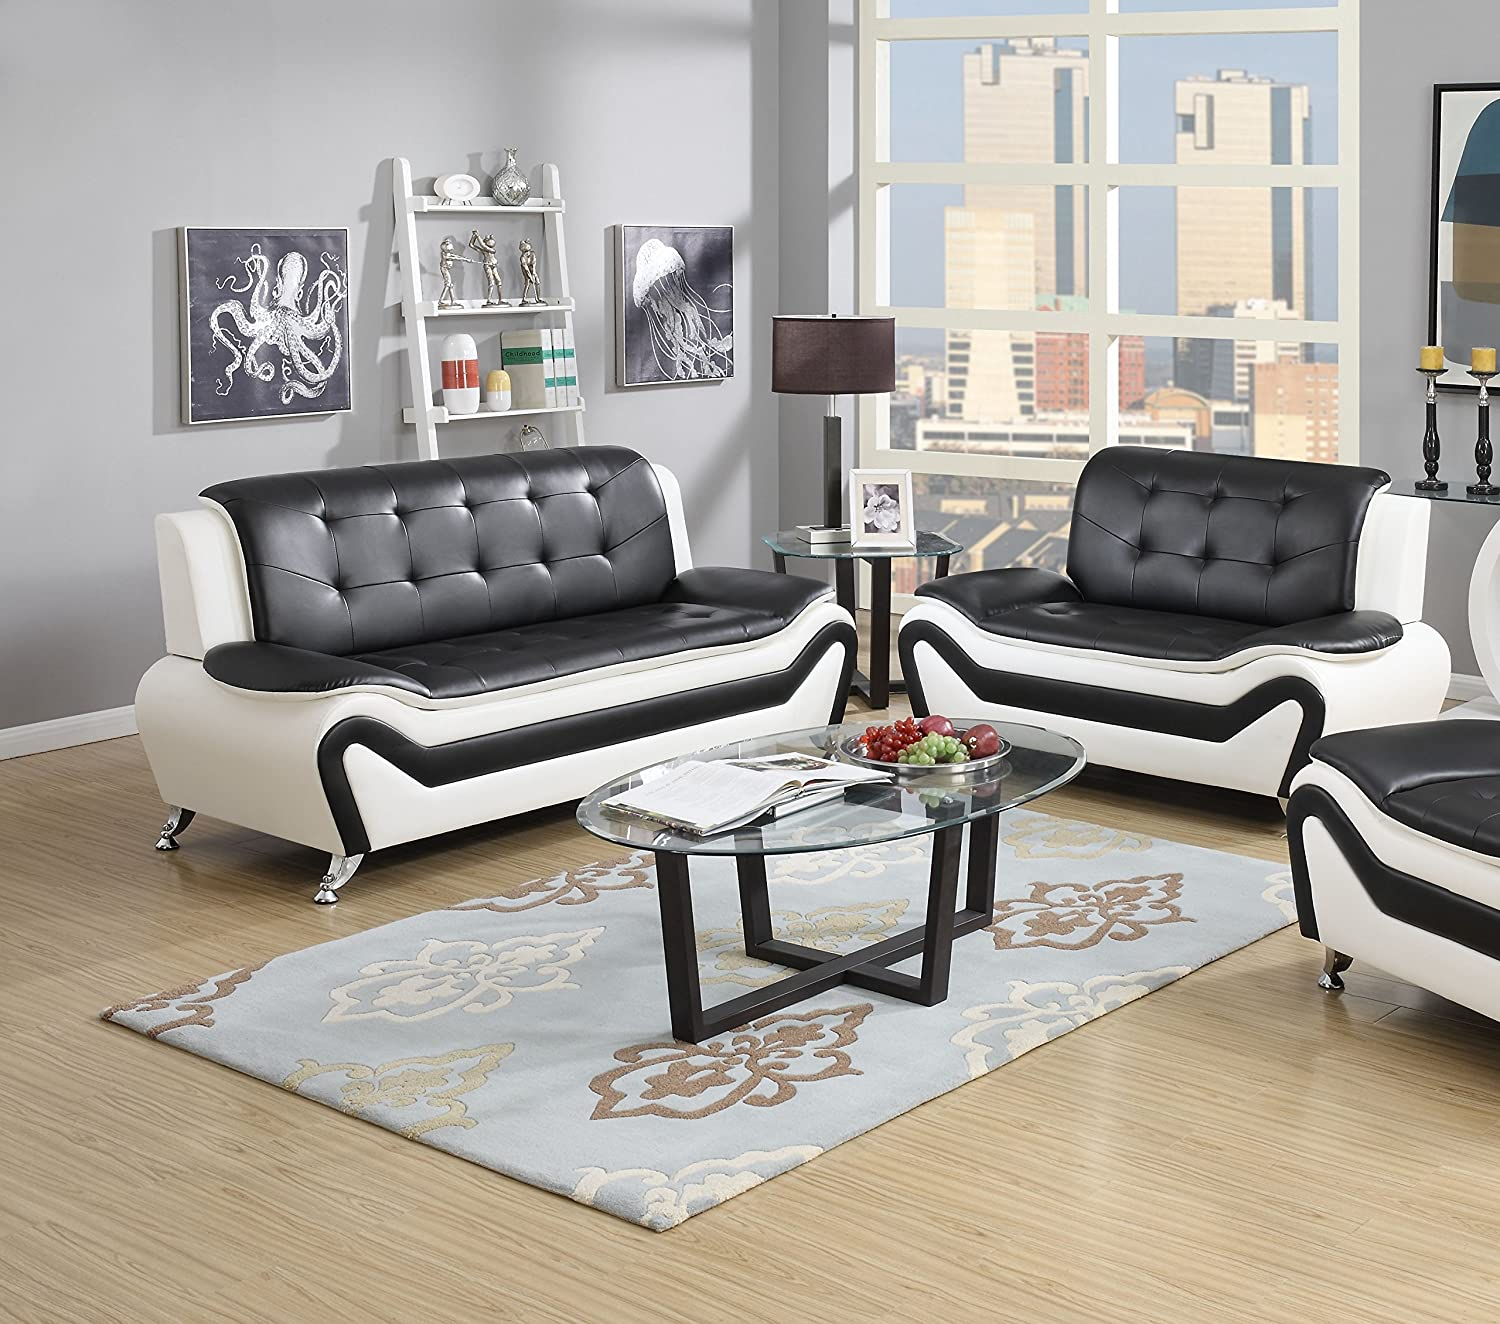 living room furniture set. Amazon com  US Pride Furniture 3 Piece Modern Bonded Leather Sofa Set with Loveseat and Chair White Black Kitchen Dining